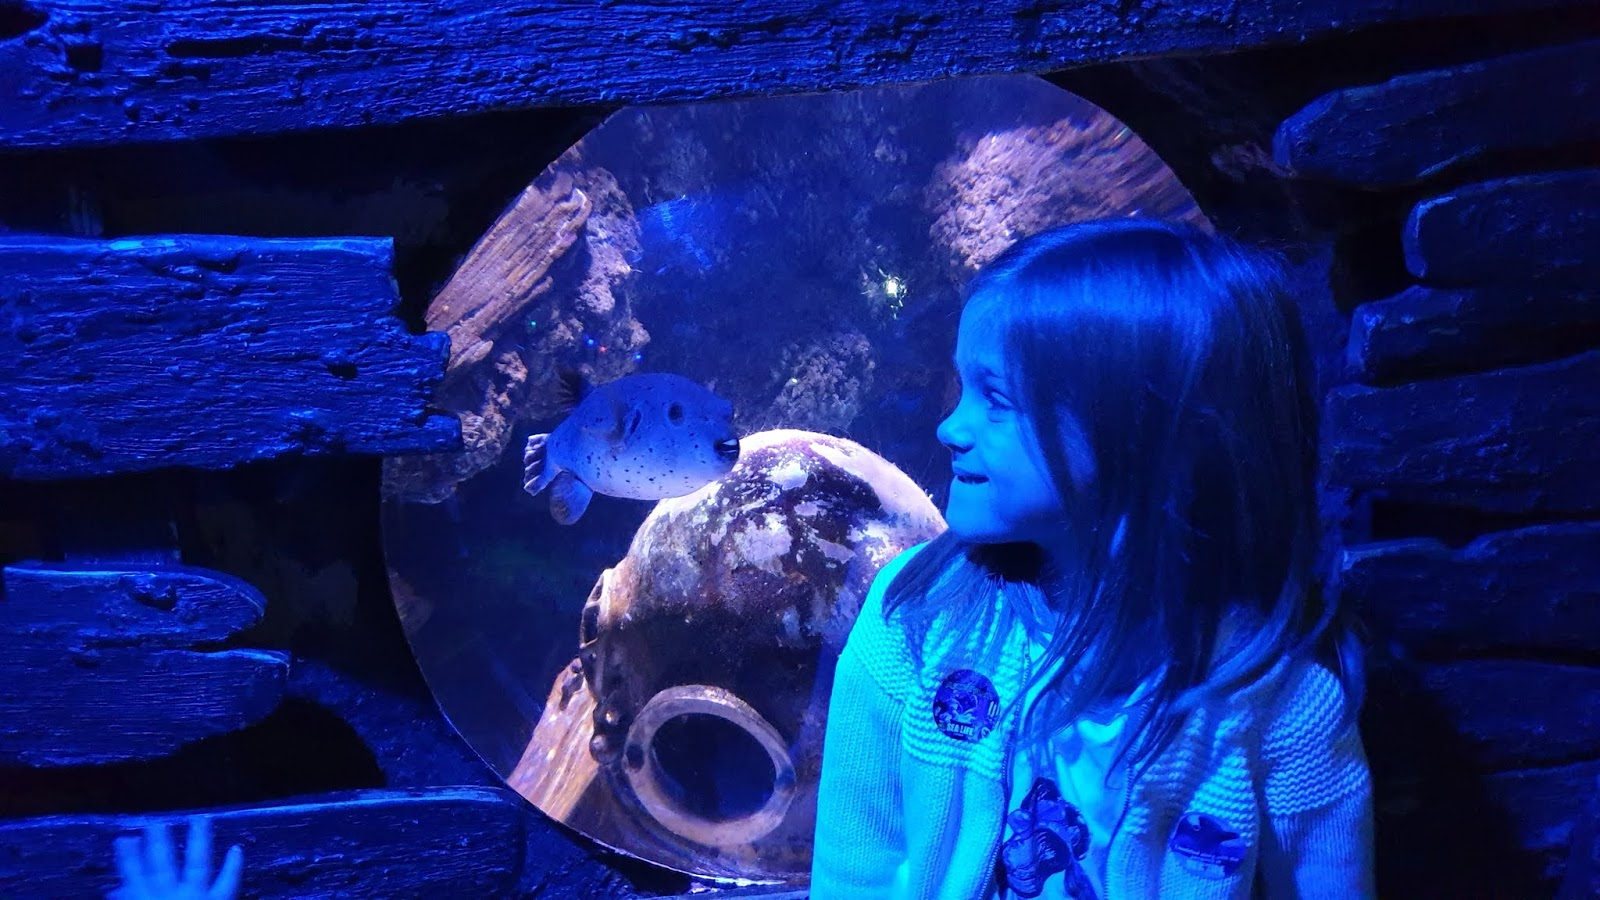 smiling at pufferfish